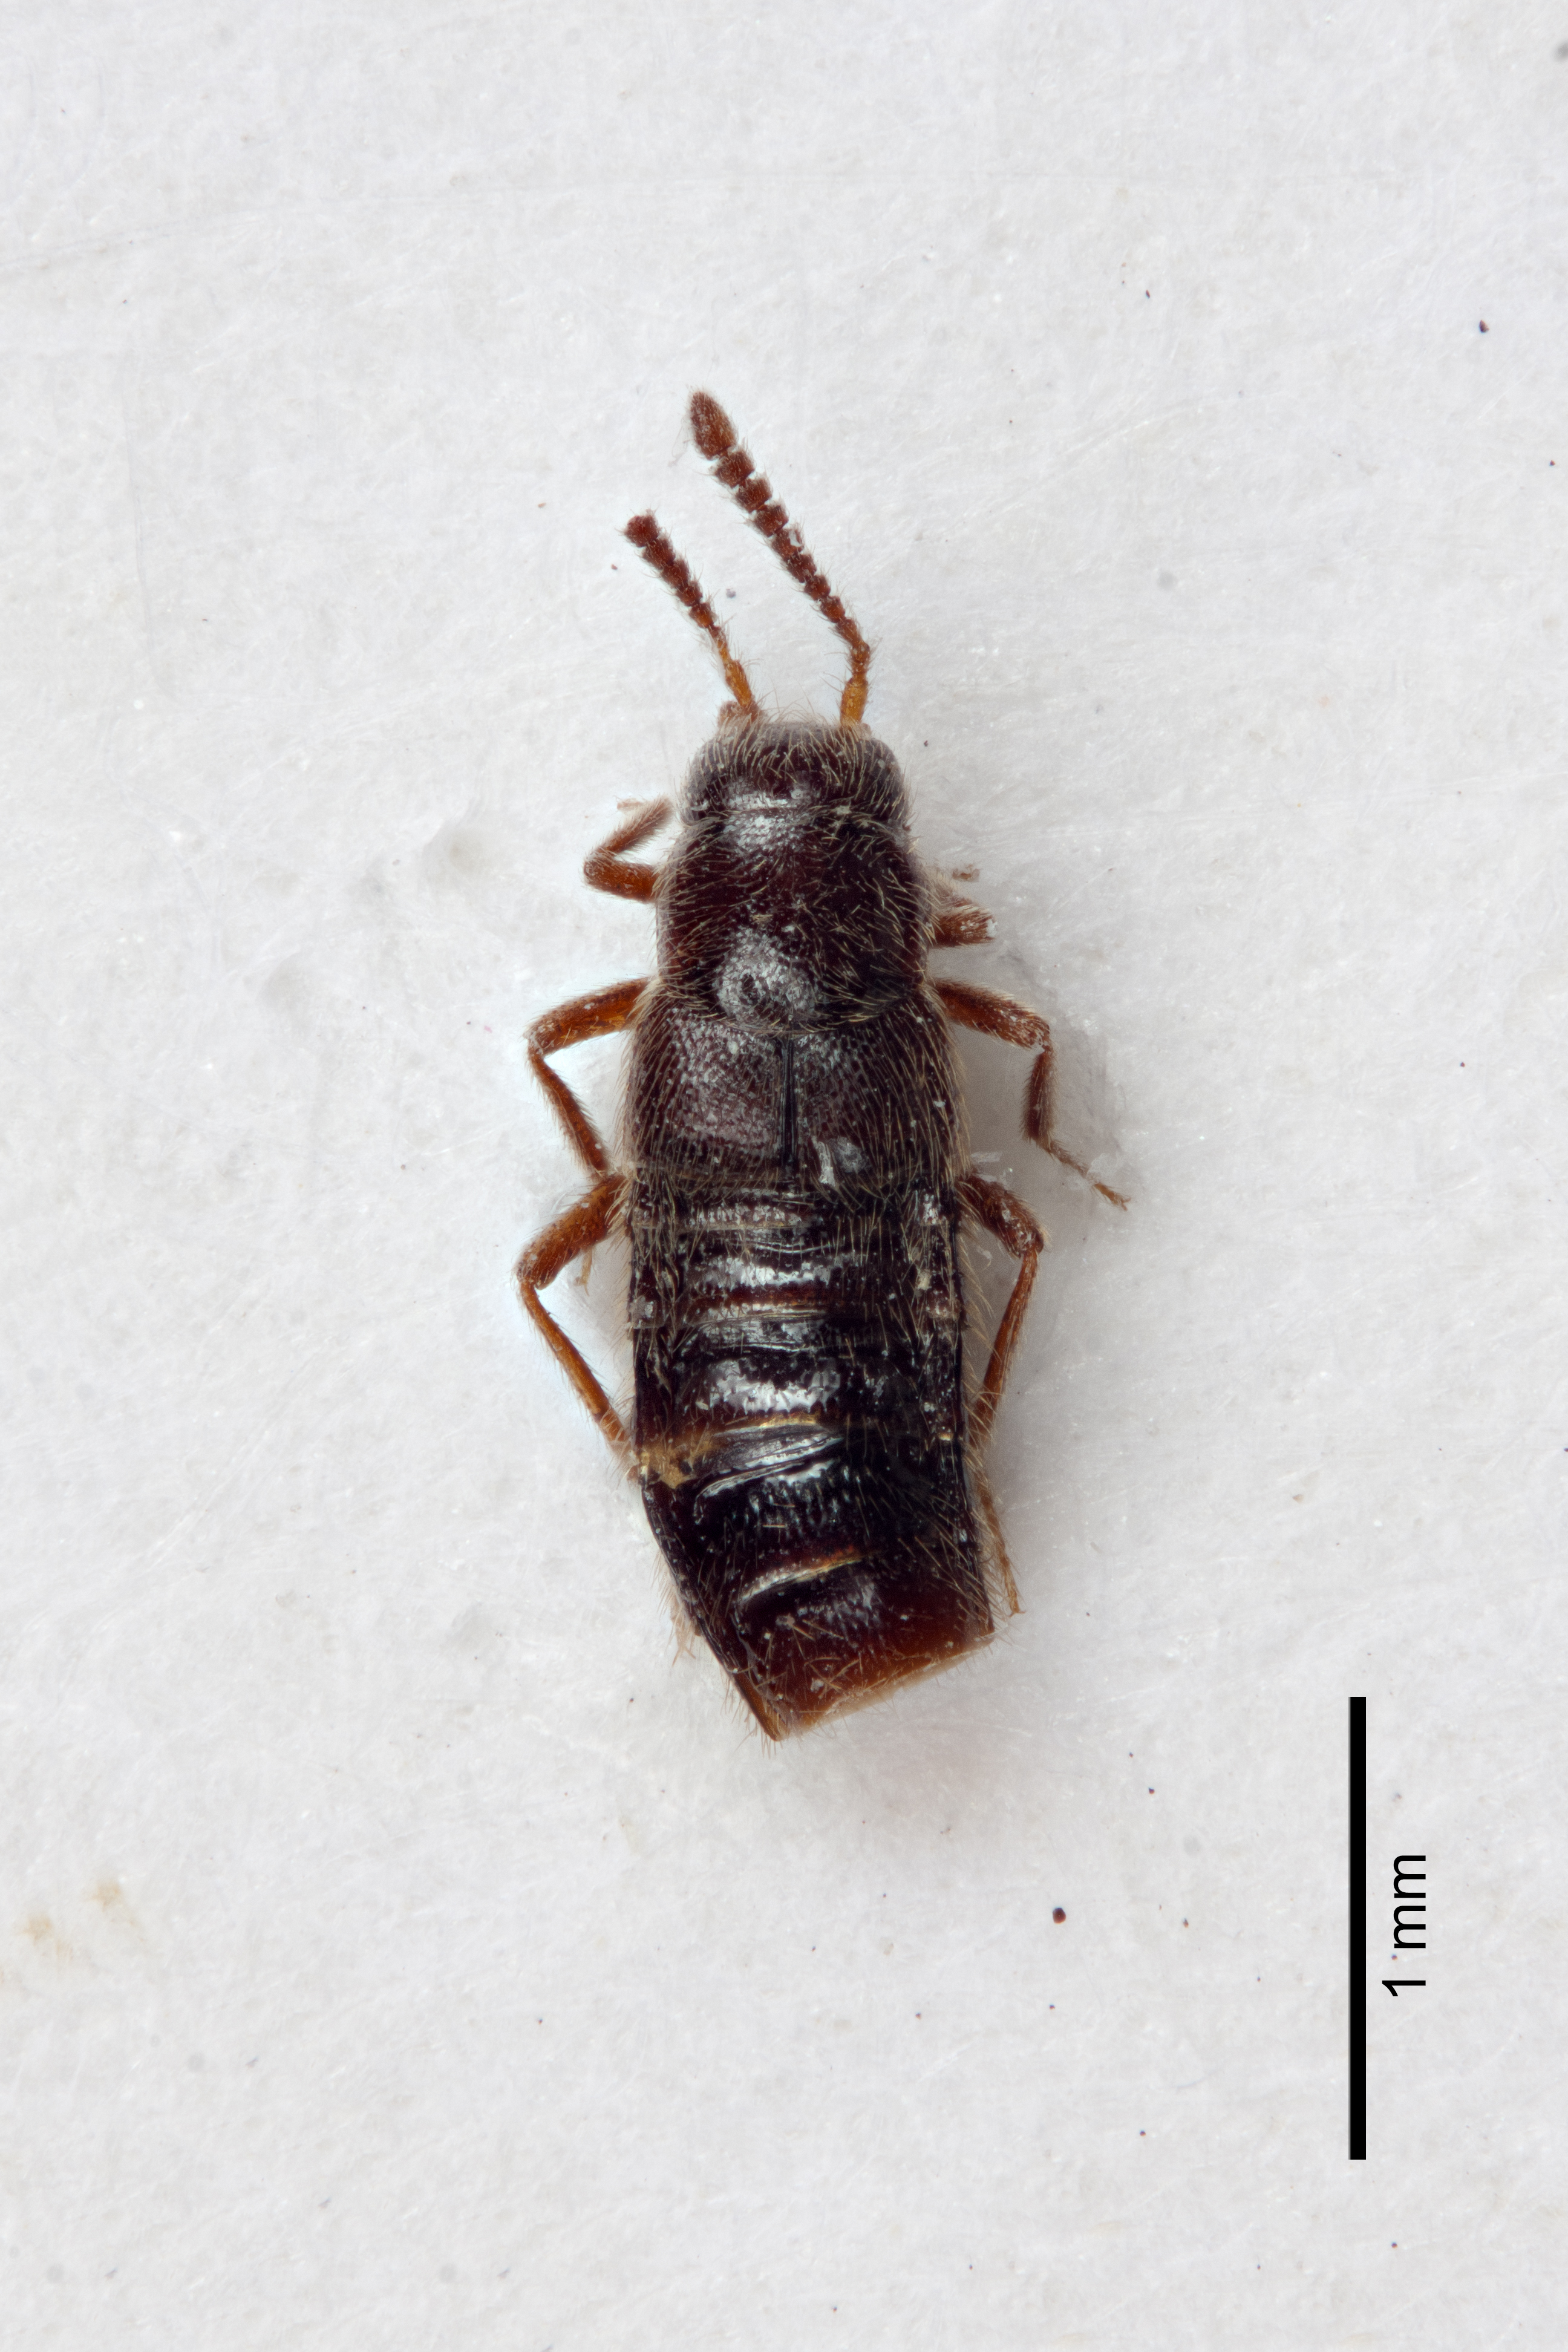 Image of Ocyusa brevipennis